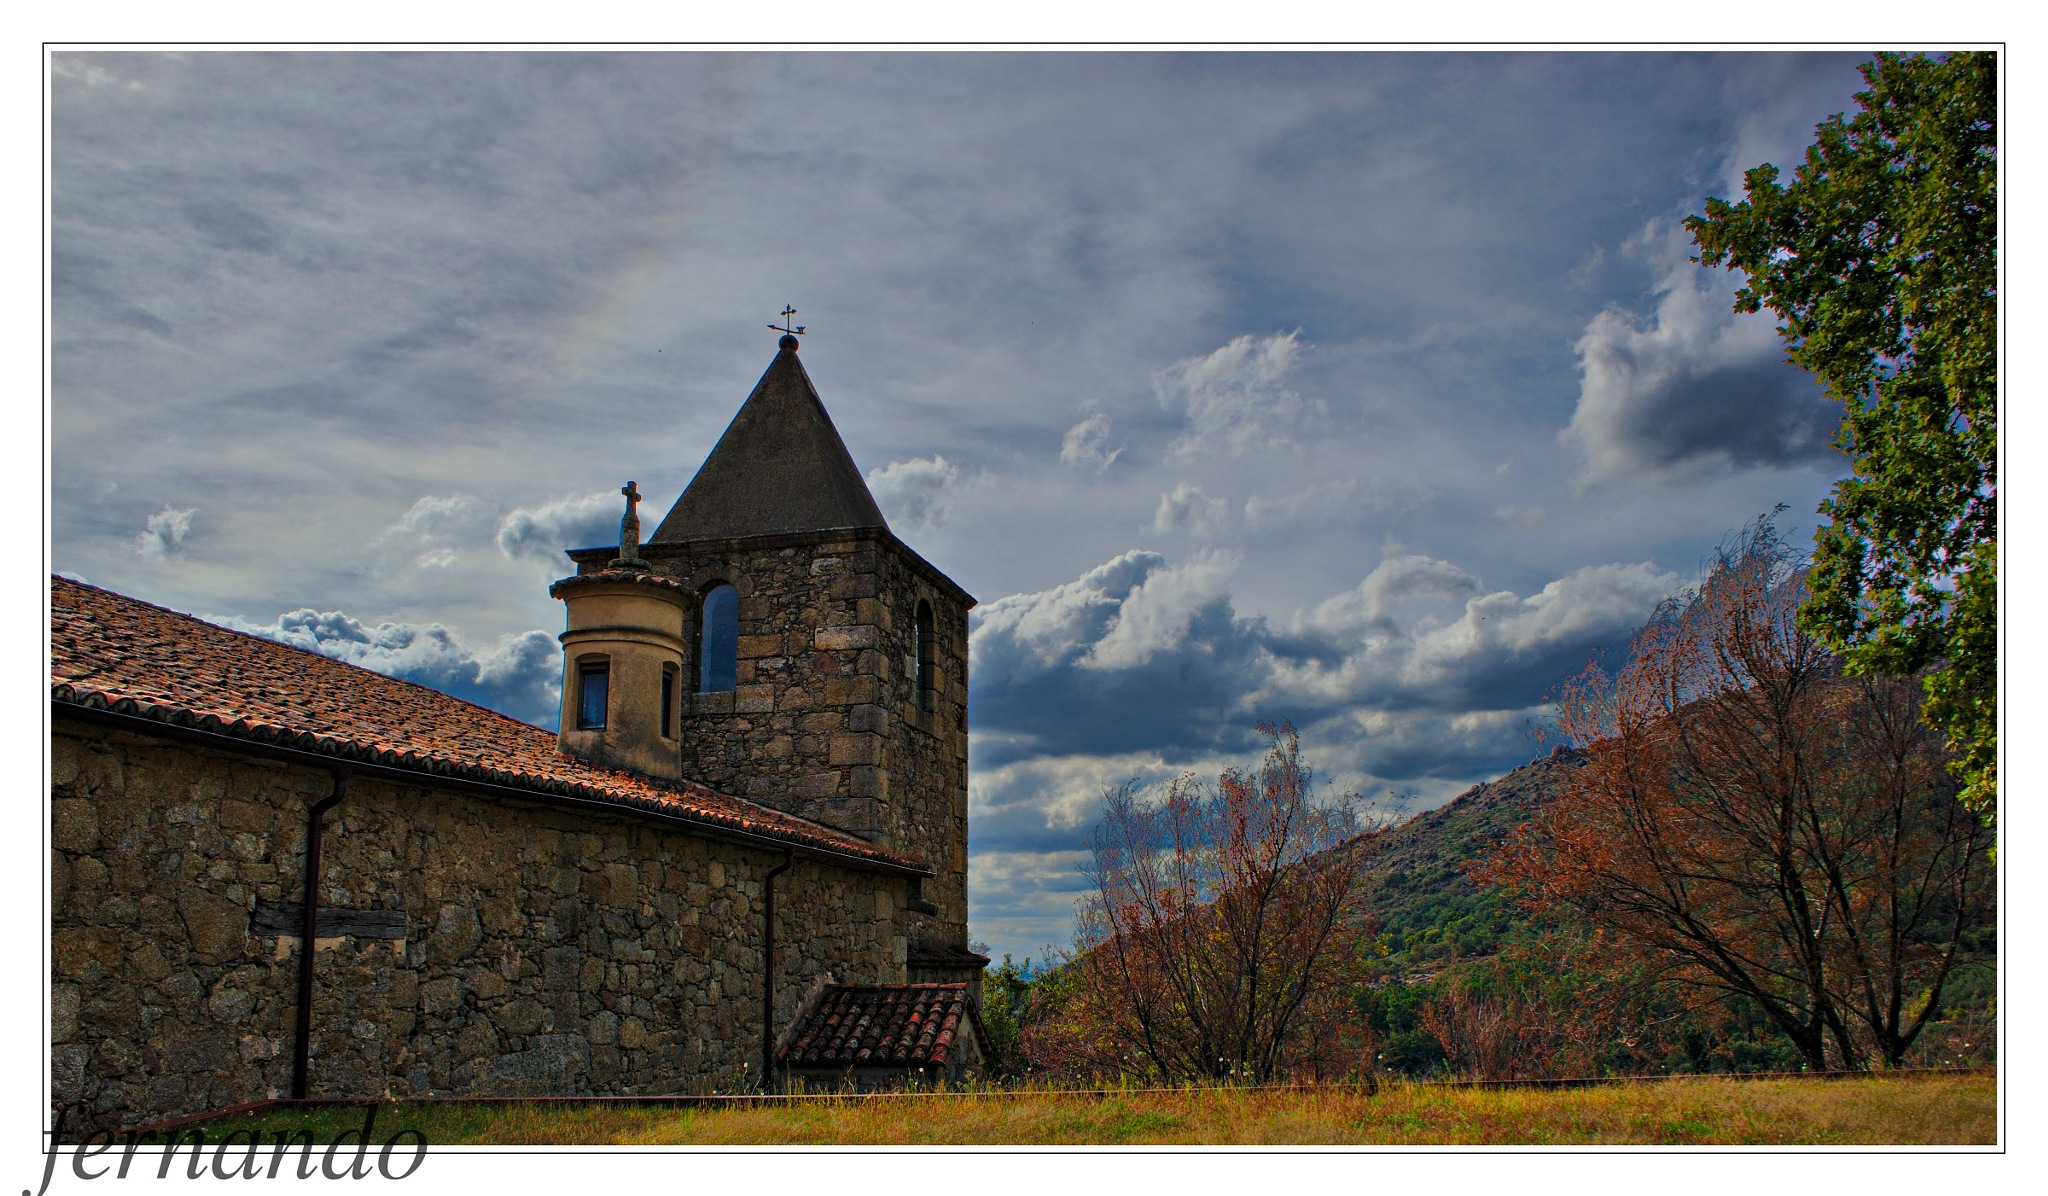 Conventual by fgred